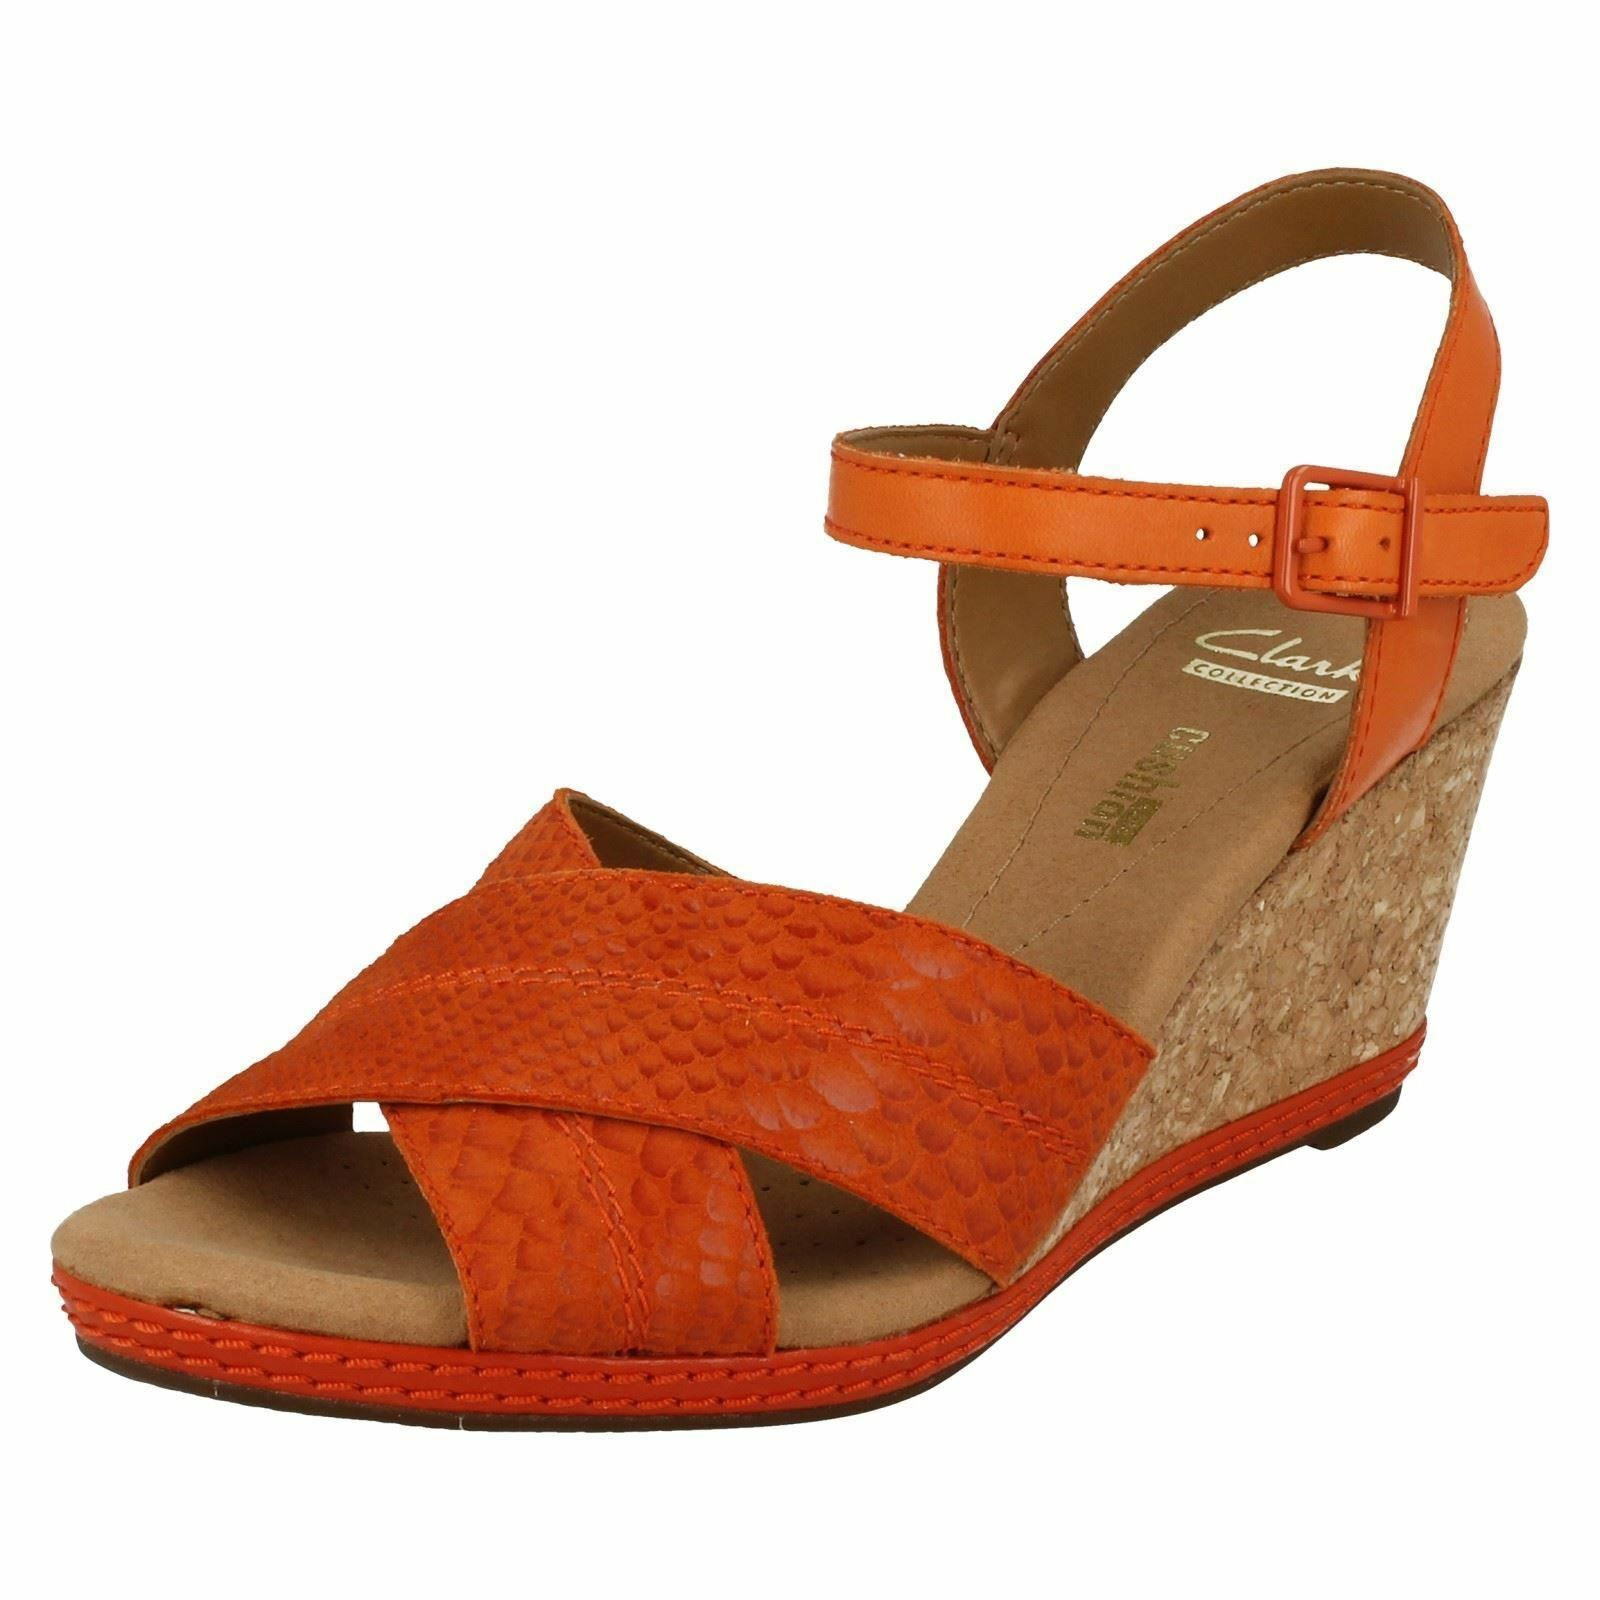 Damen Clarks orange Leder Keil Sandale- UK 6- EU 39.5d